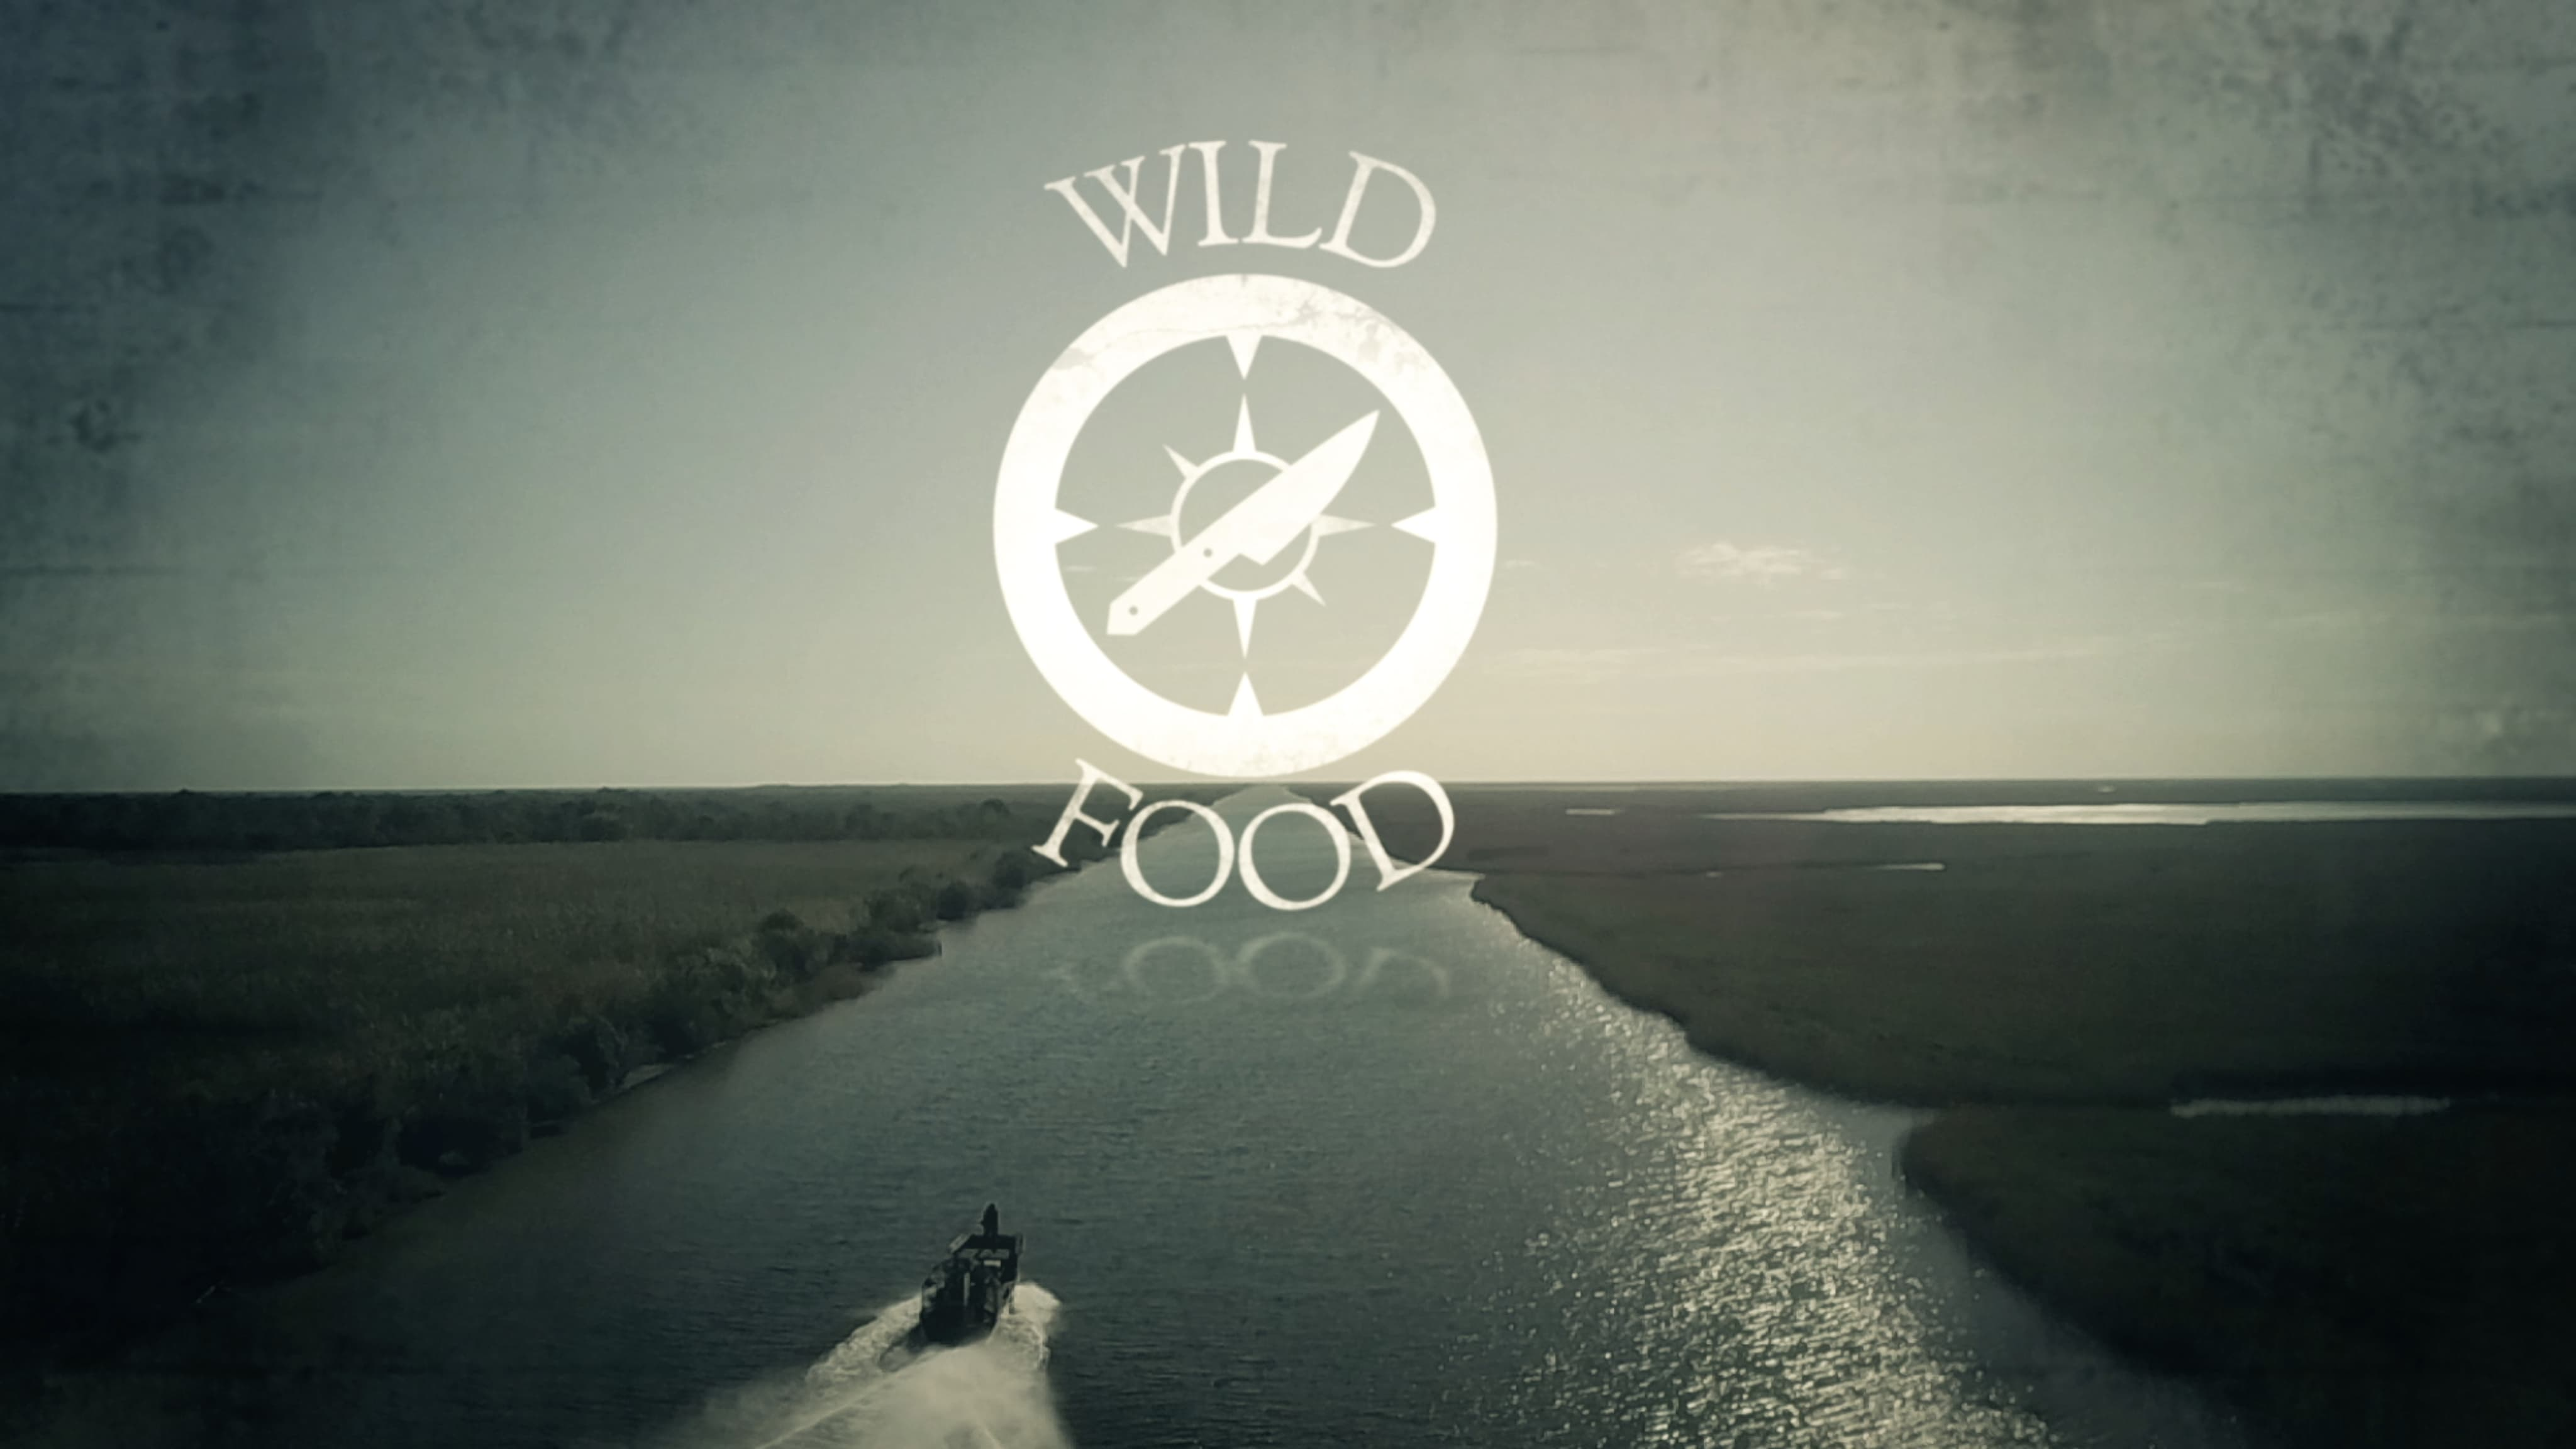 Wild Food on Travel Channel